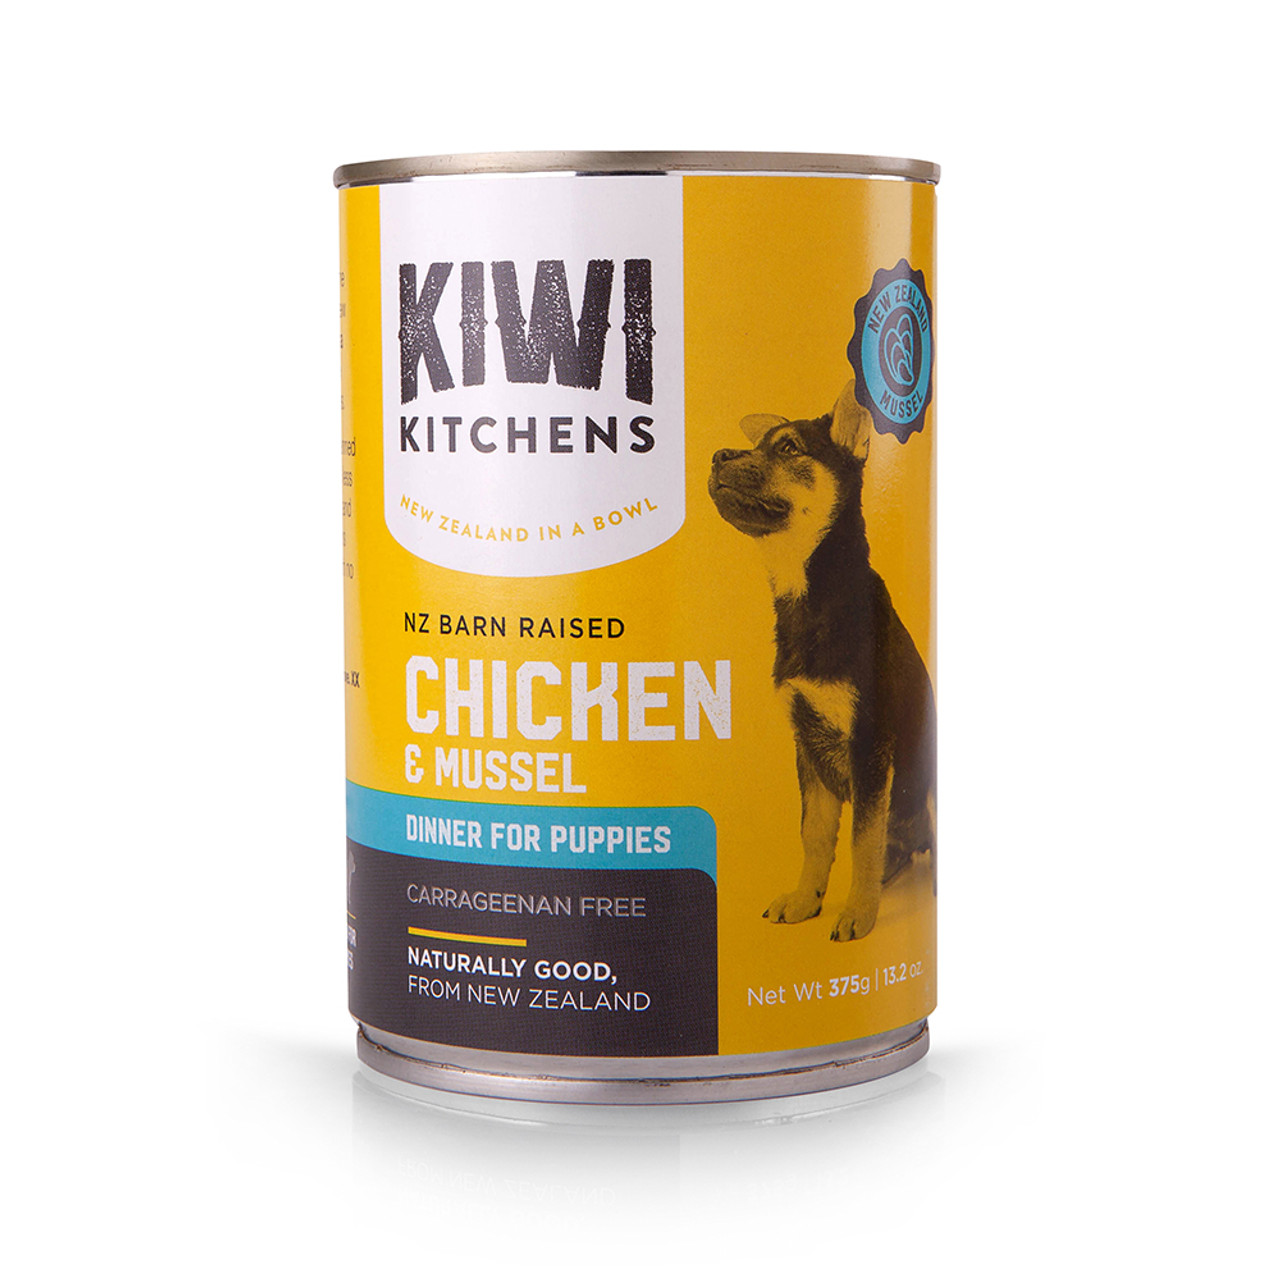 Kiwi Kitchens Chicken & Mussel Dinner Canned Puppy Food